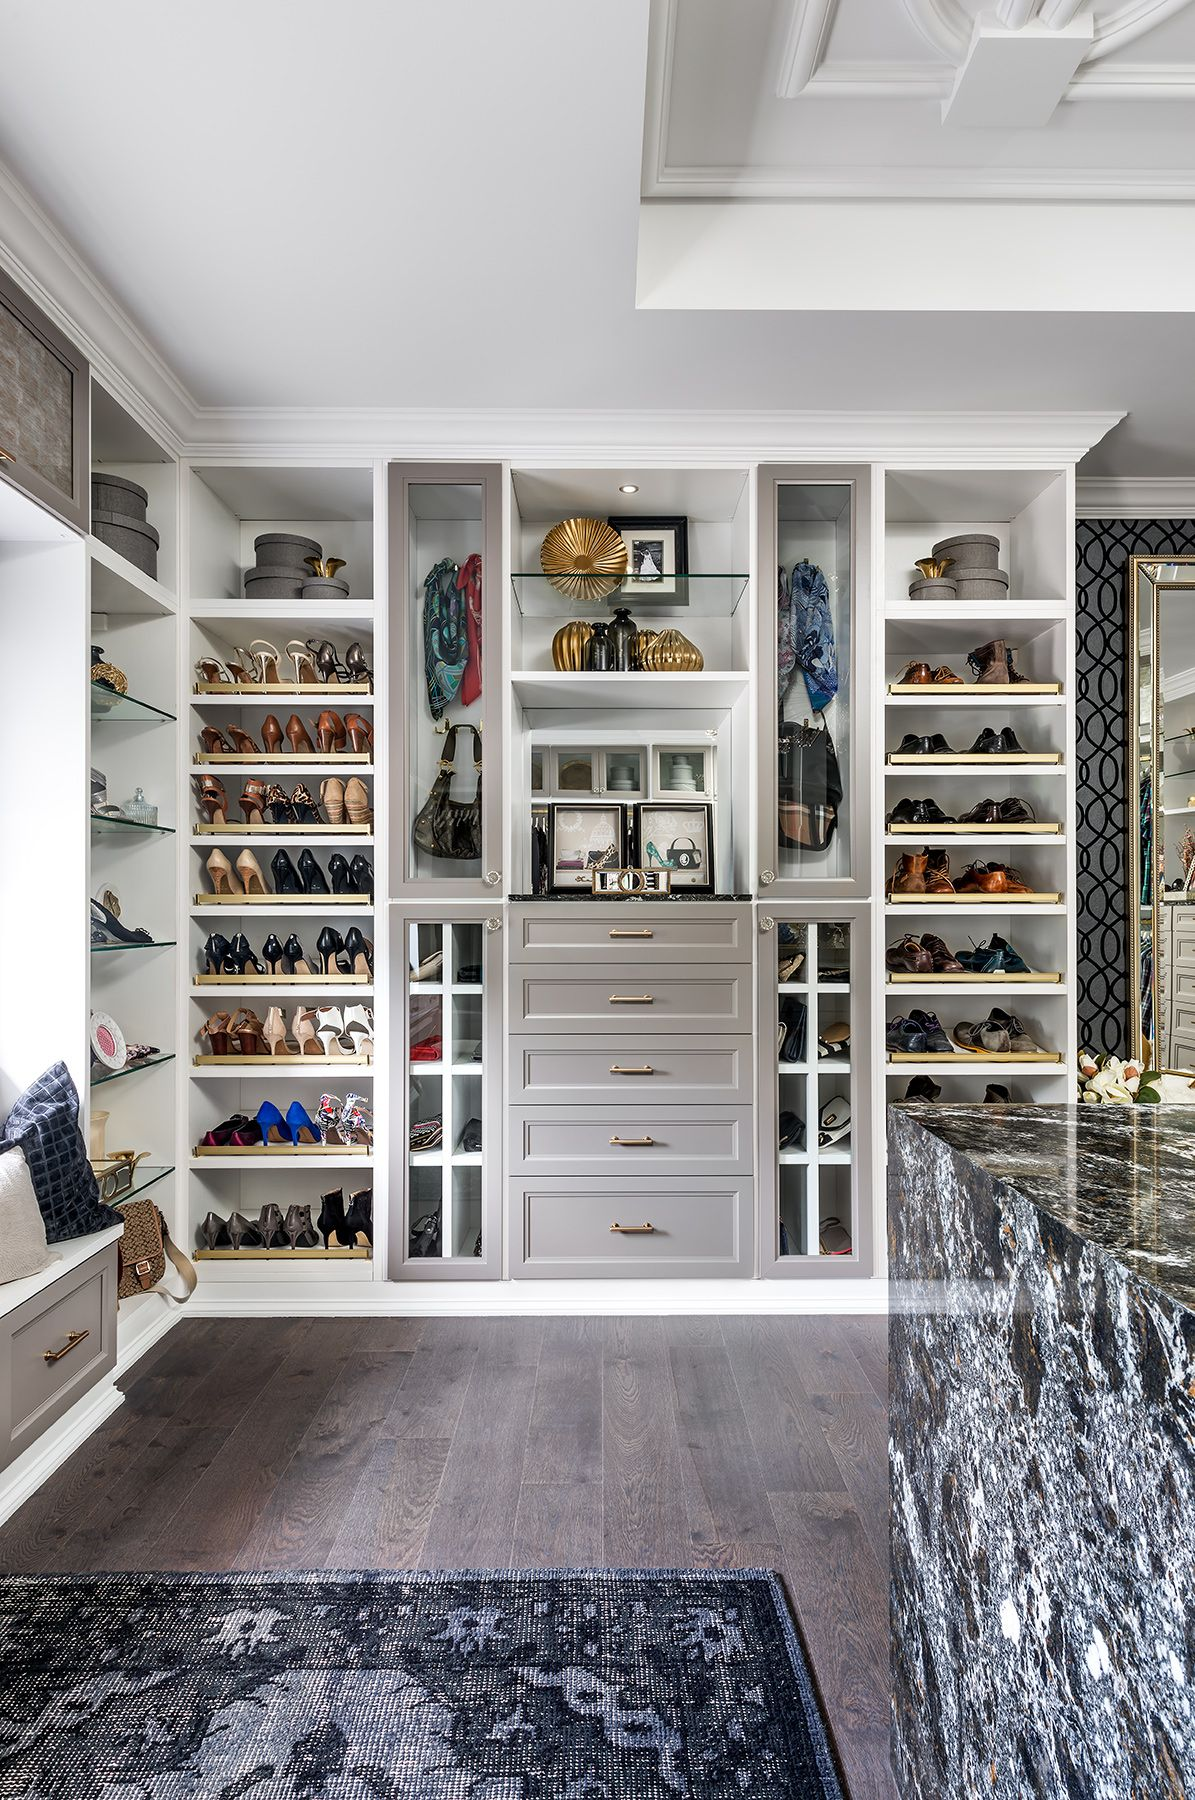 Ideas Of Functional And Practical Walk In Closet For Home: 5 Tips For A Functional Walk In Closet